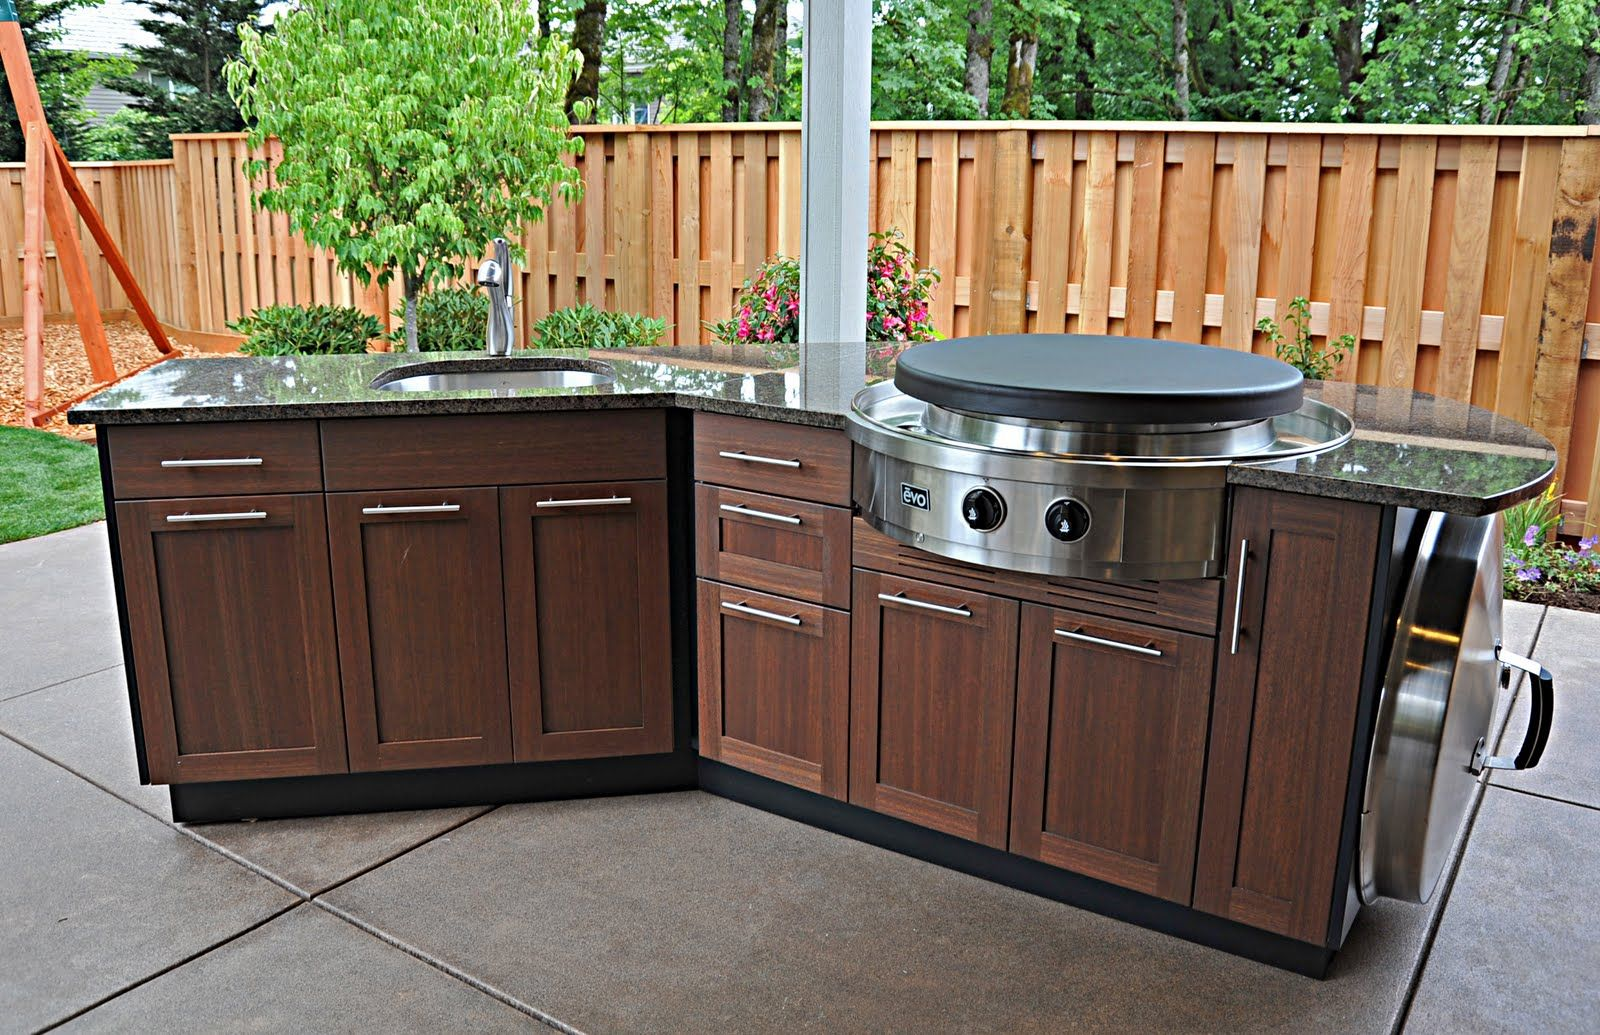 Outdoors Kitchens Pictures 1000 Images About Lp Outdoor Kitchen On  Pinterest Outdoor Kitchens Wood Grill And ...